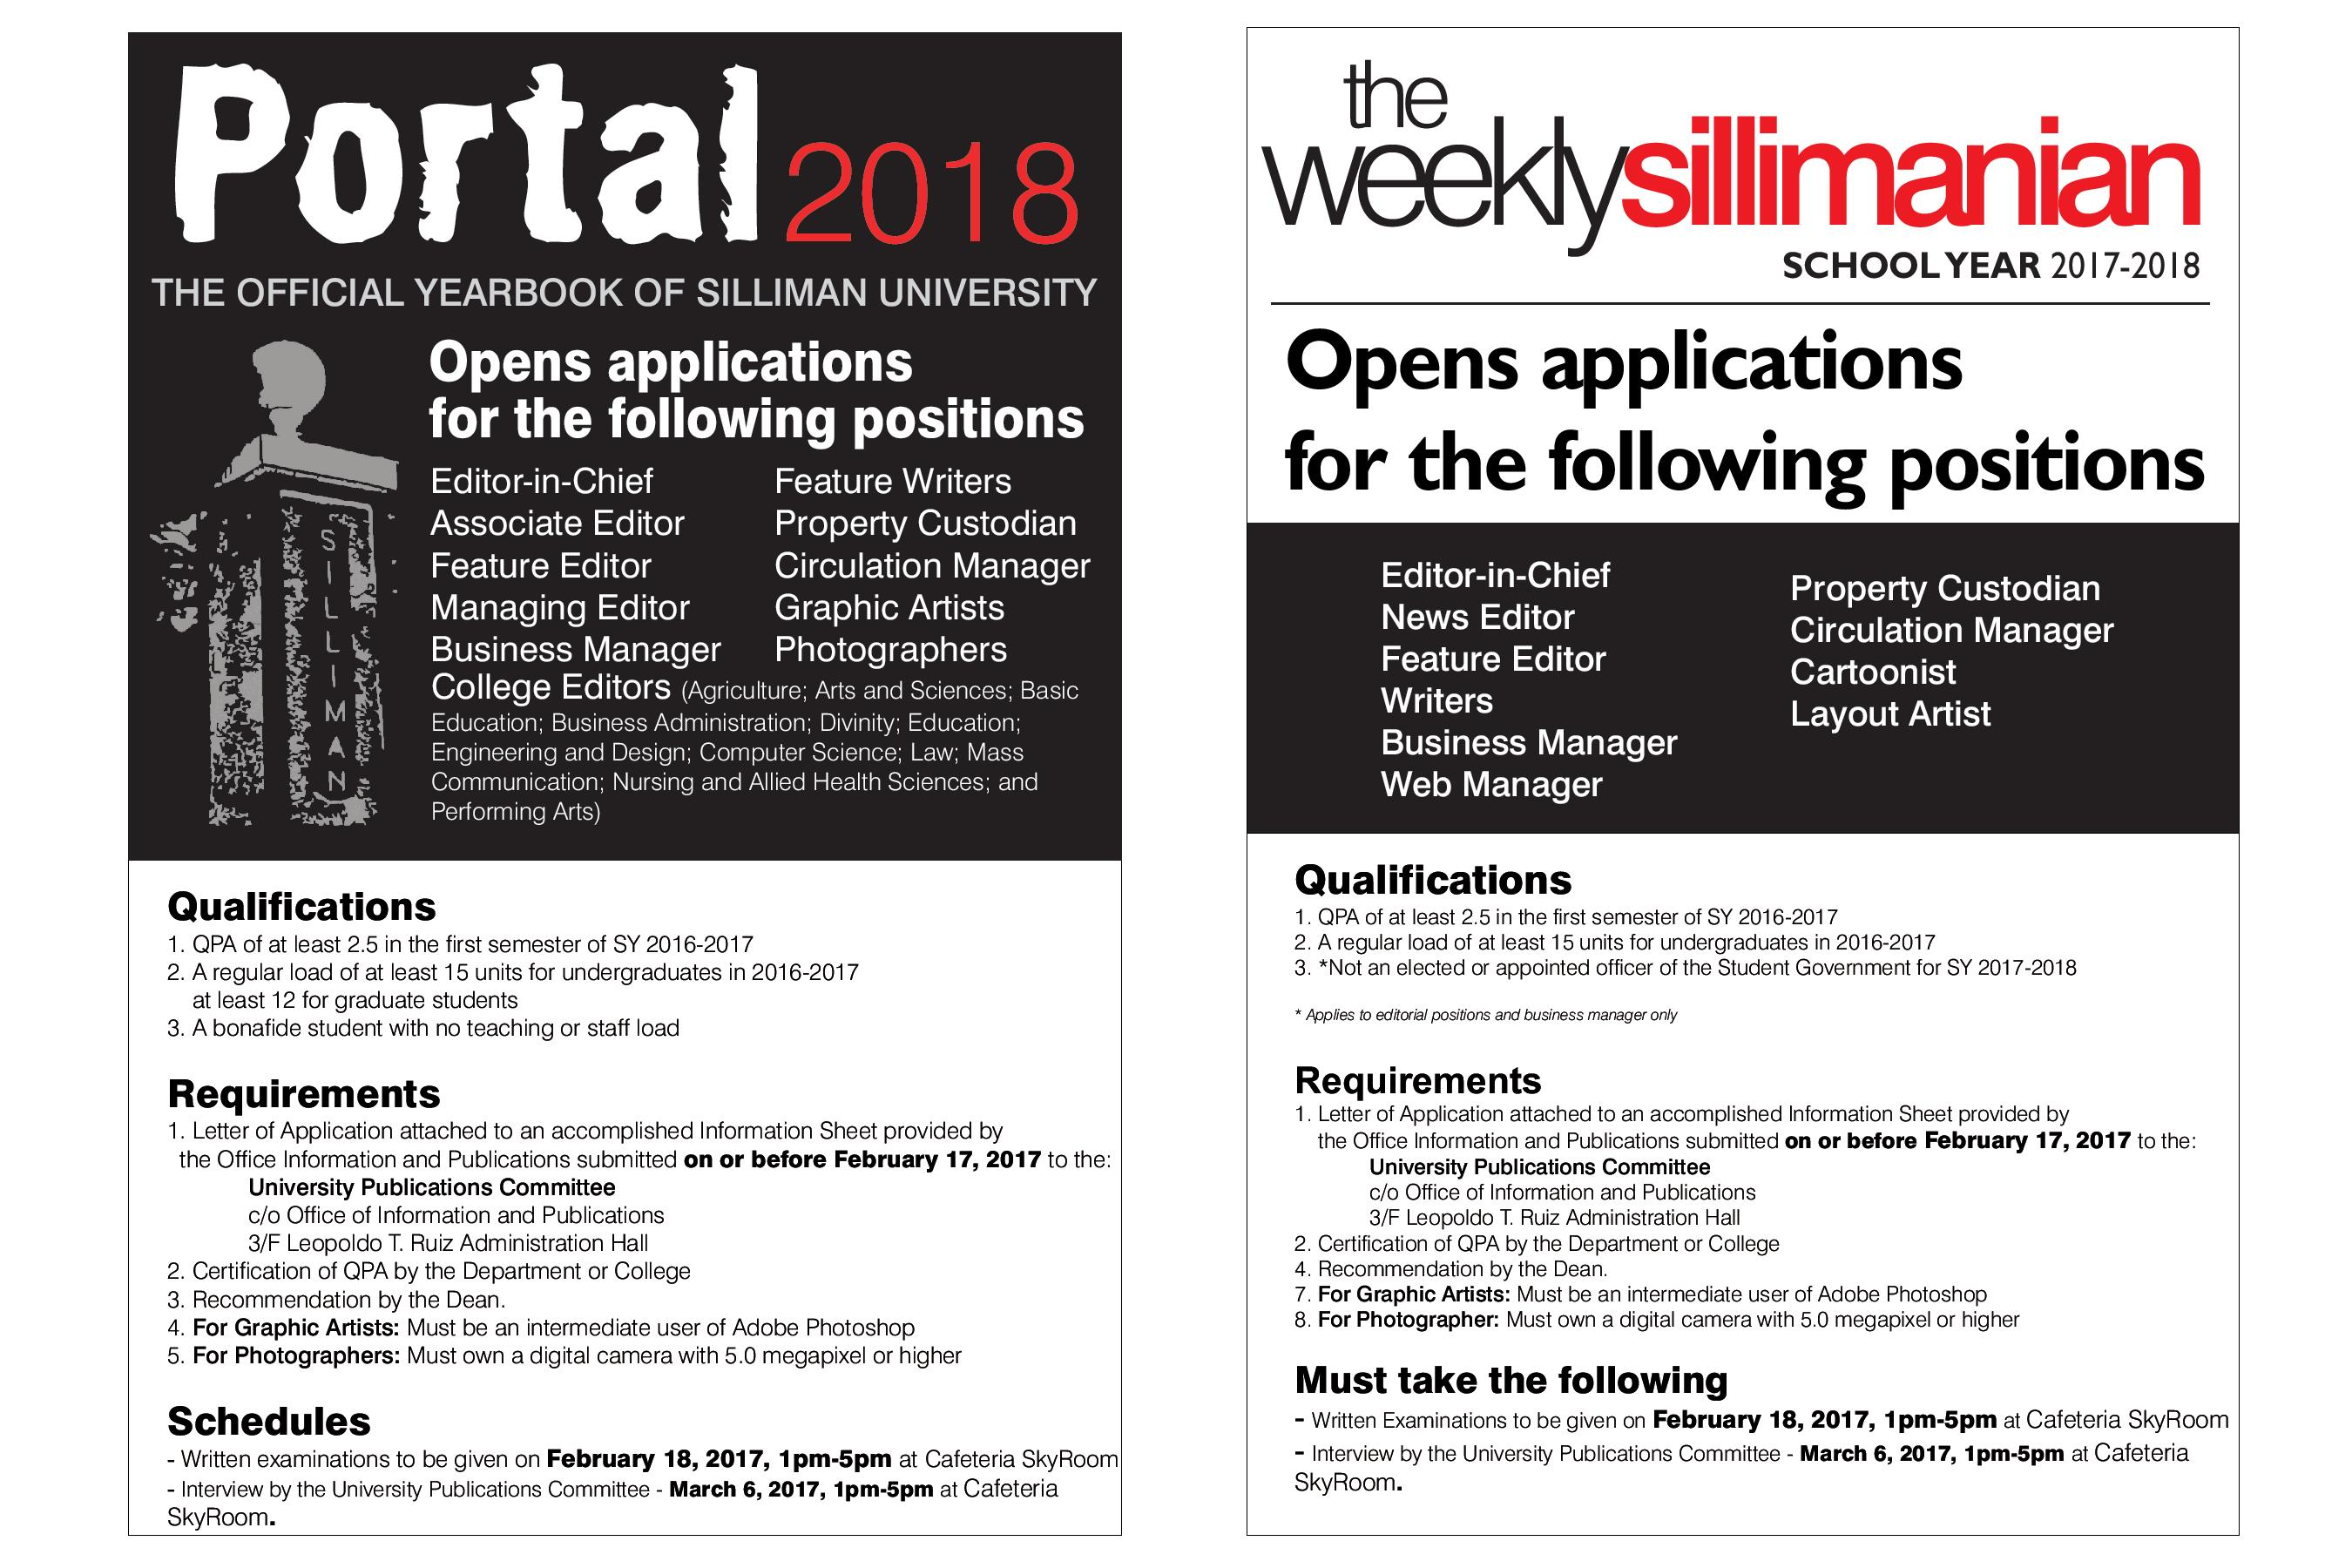 Application for Portal 2018 and The Weekly Sillimanian 2017-2018 Now Open